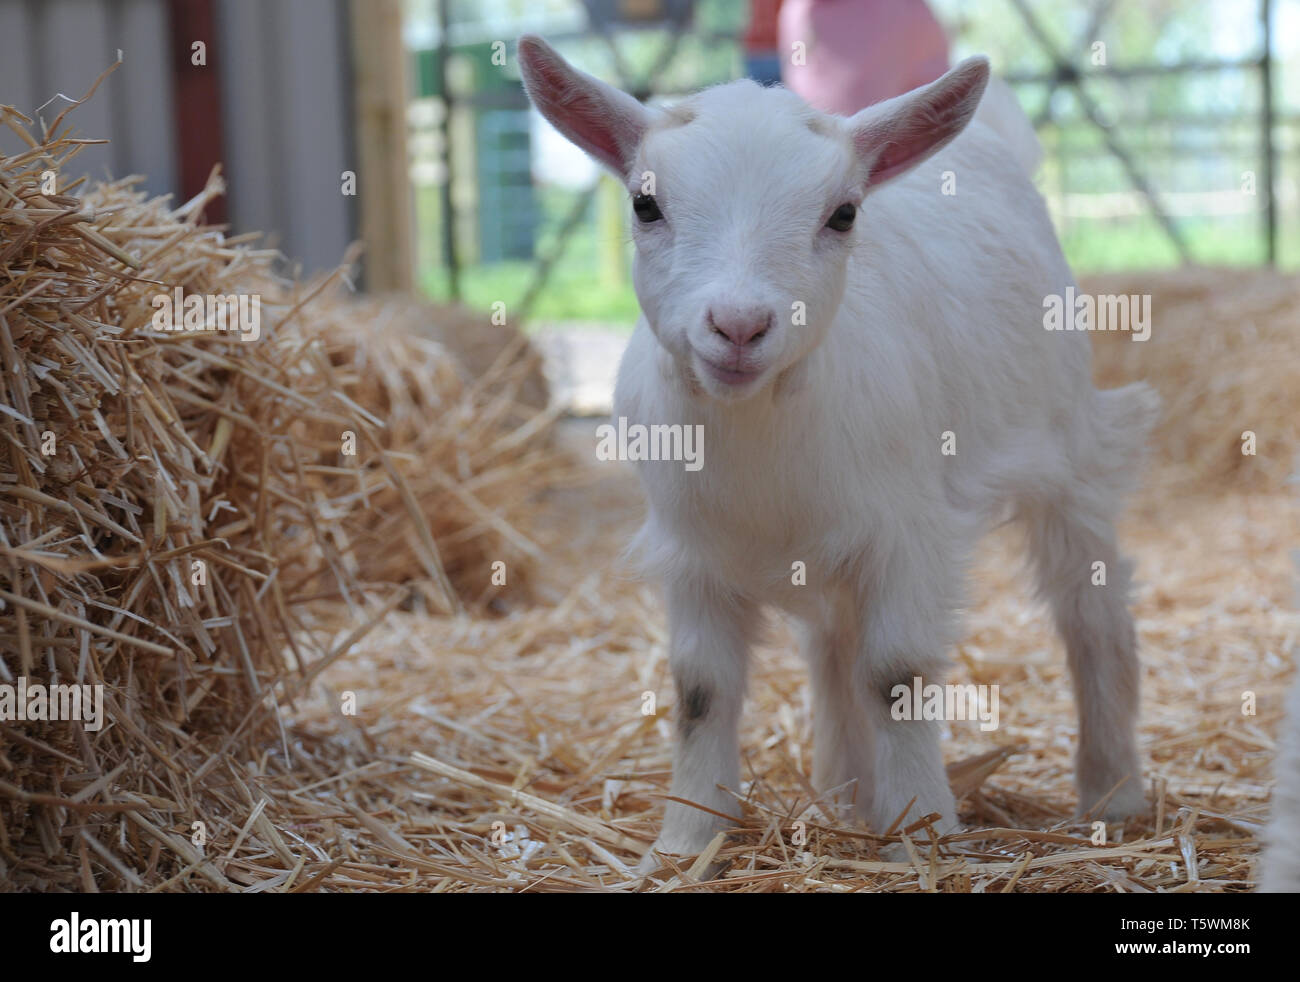 A cute young baby pygmy goat playing in straw in a barn. - Stock Image